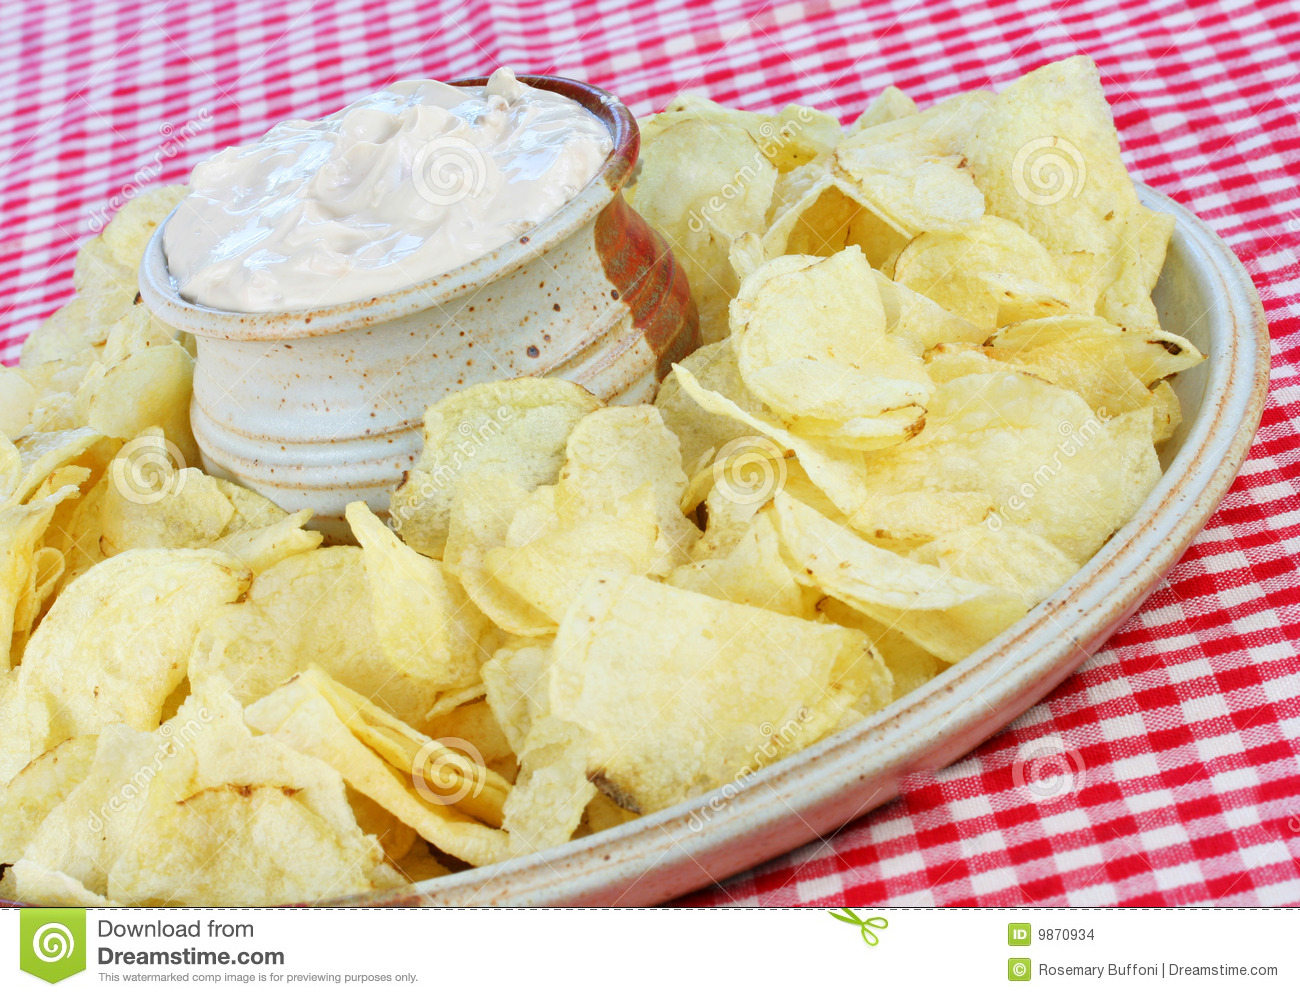 Potato Chips and Onion Dip in a tilted composition.